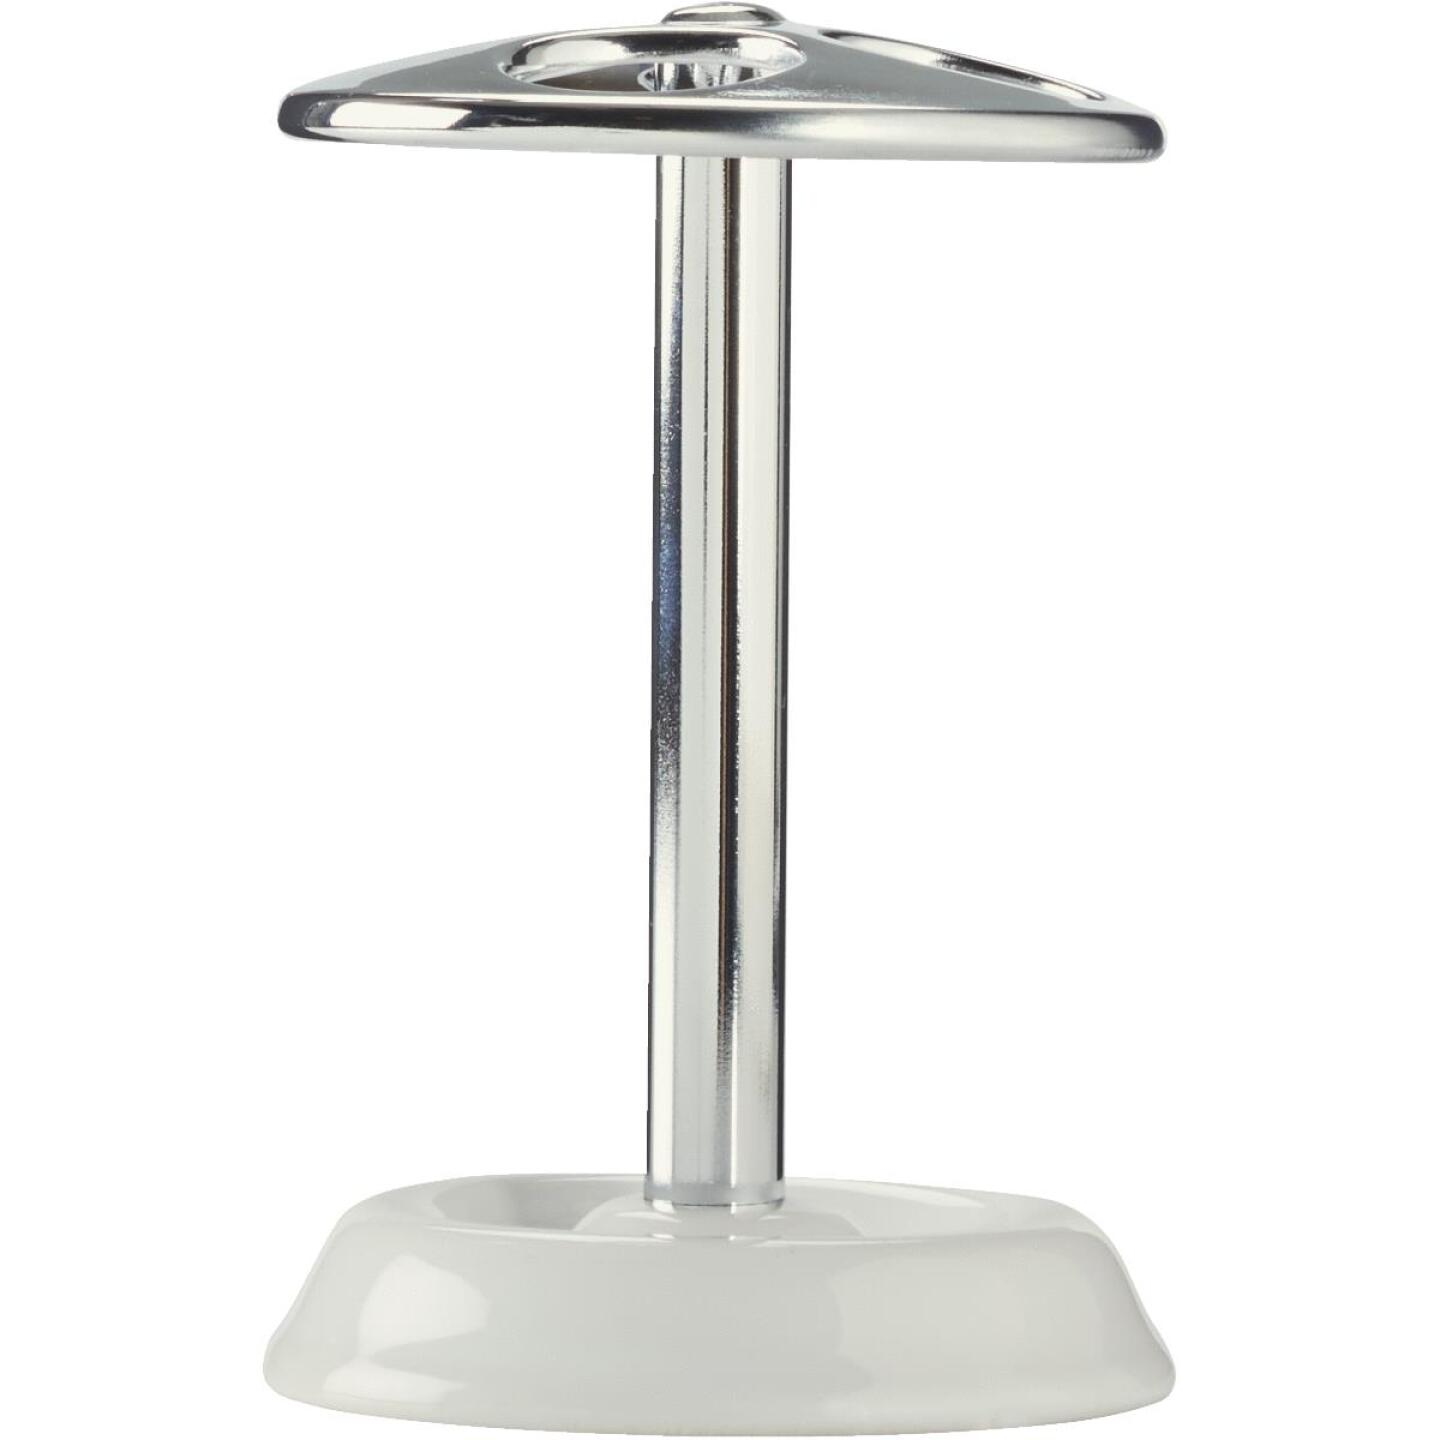 InterDesign White/Chrome Toothbrush Holder Image 2